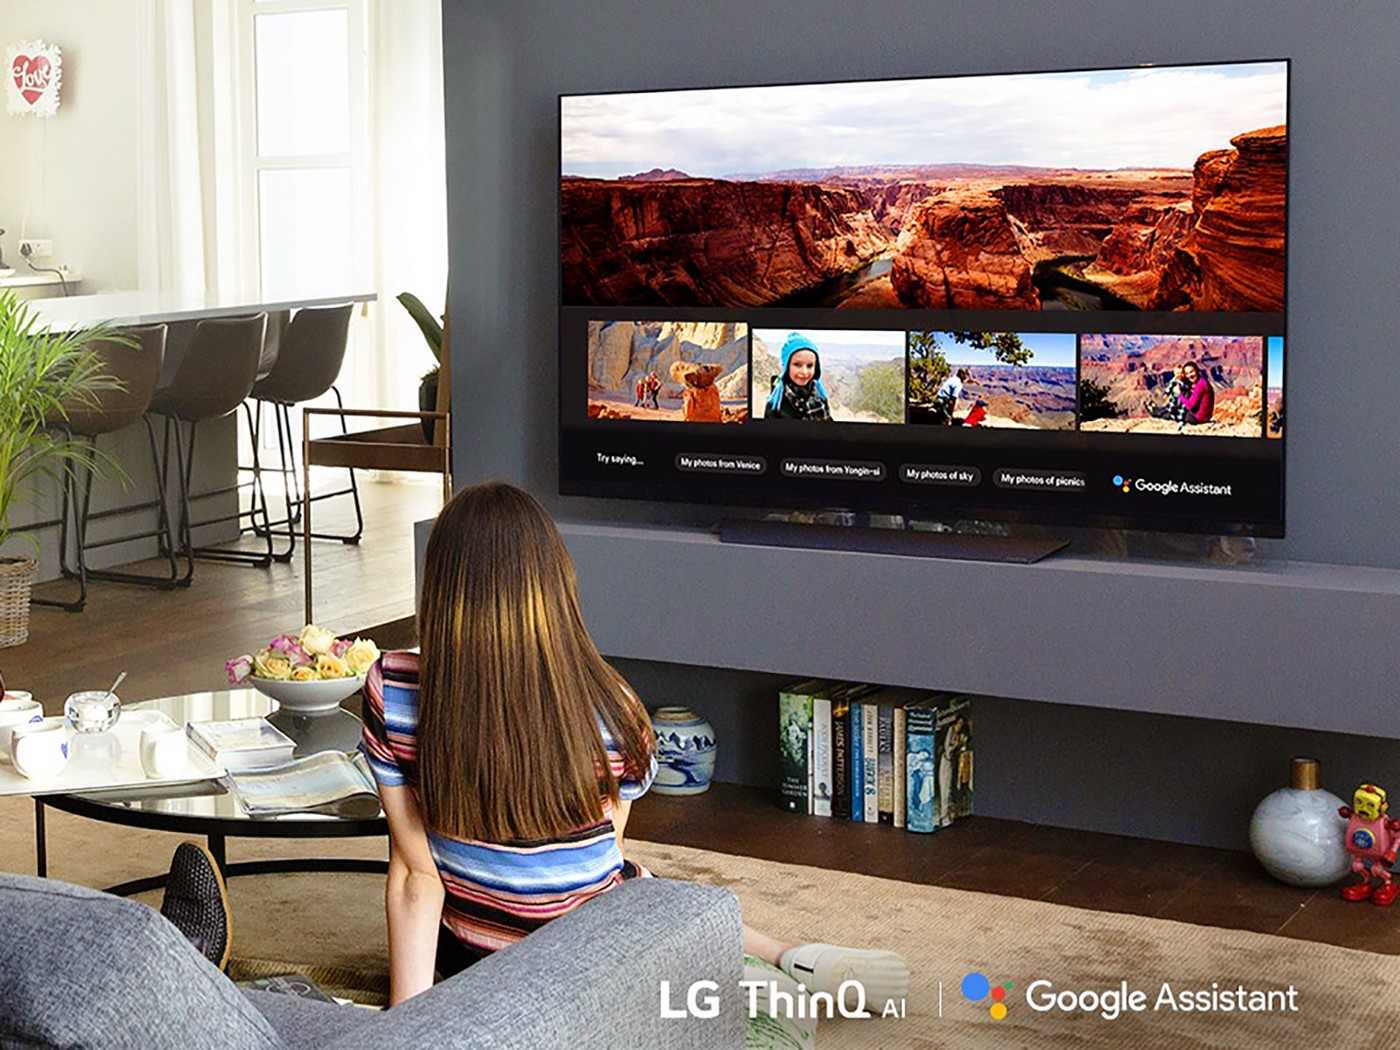 LG: Bringing Cinema Experience Home through New Range of TVs